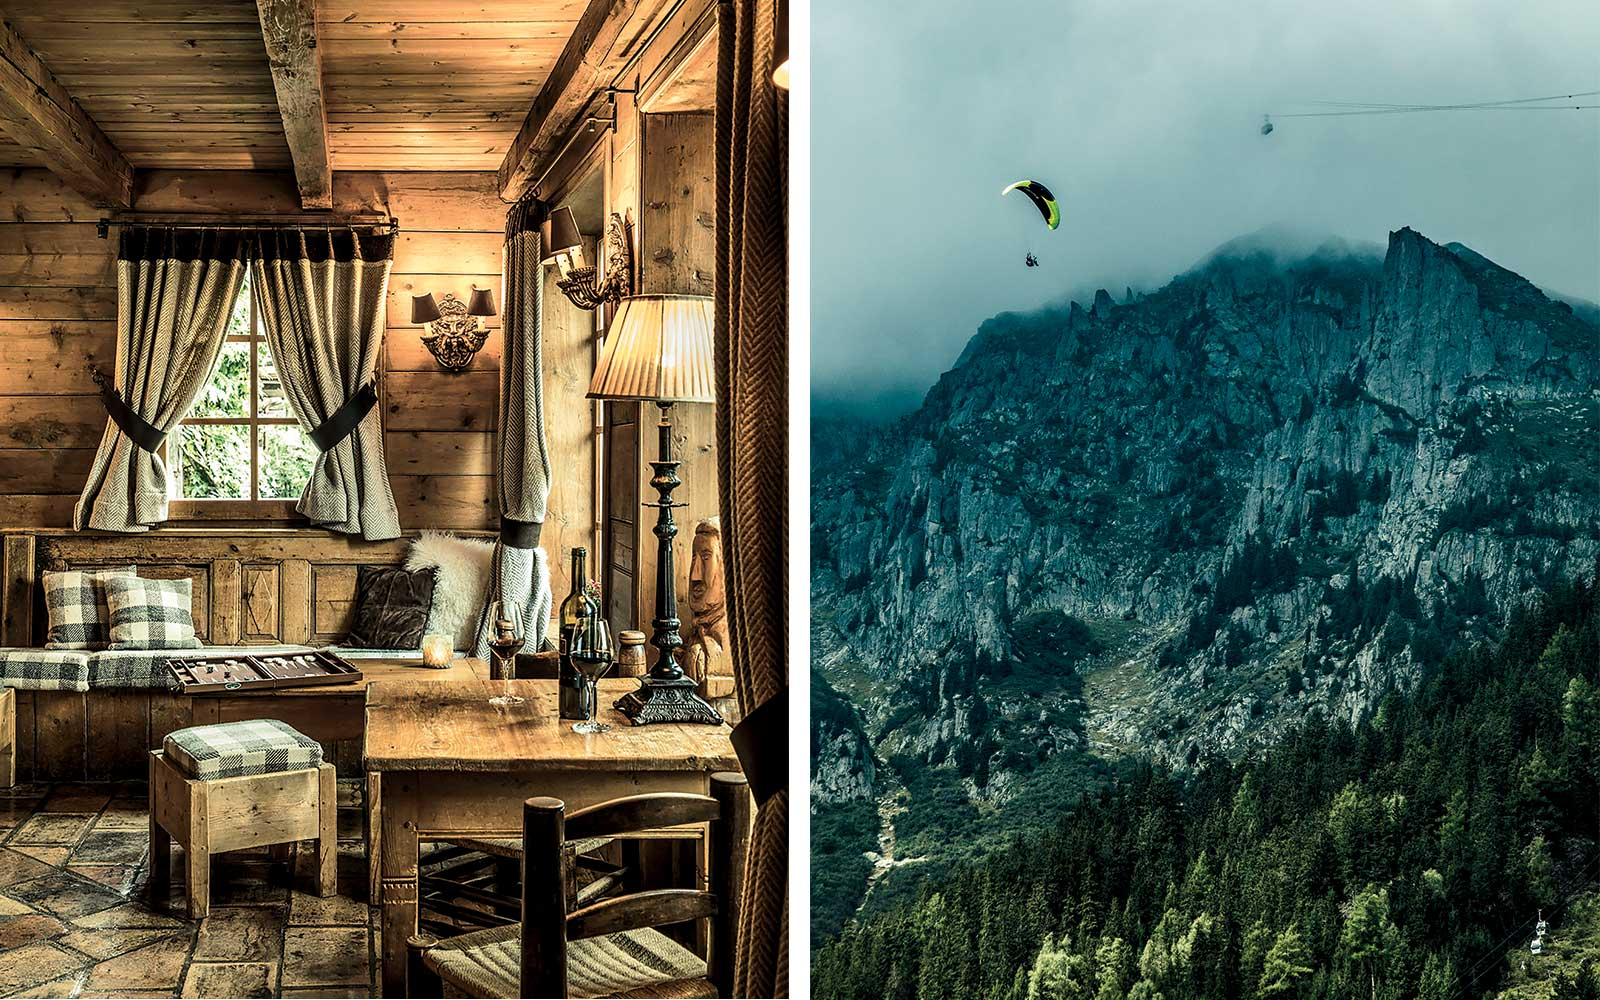 The Ferme de Marie hotel, in Megeve, France; view of a paraglider from Chamonix.